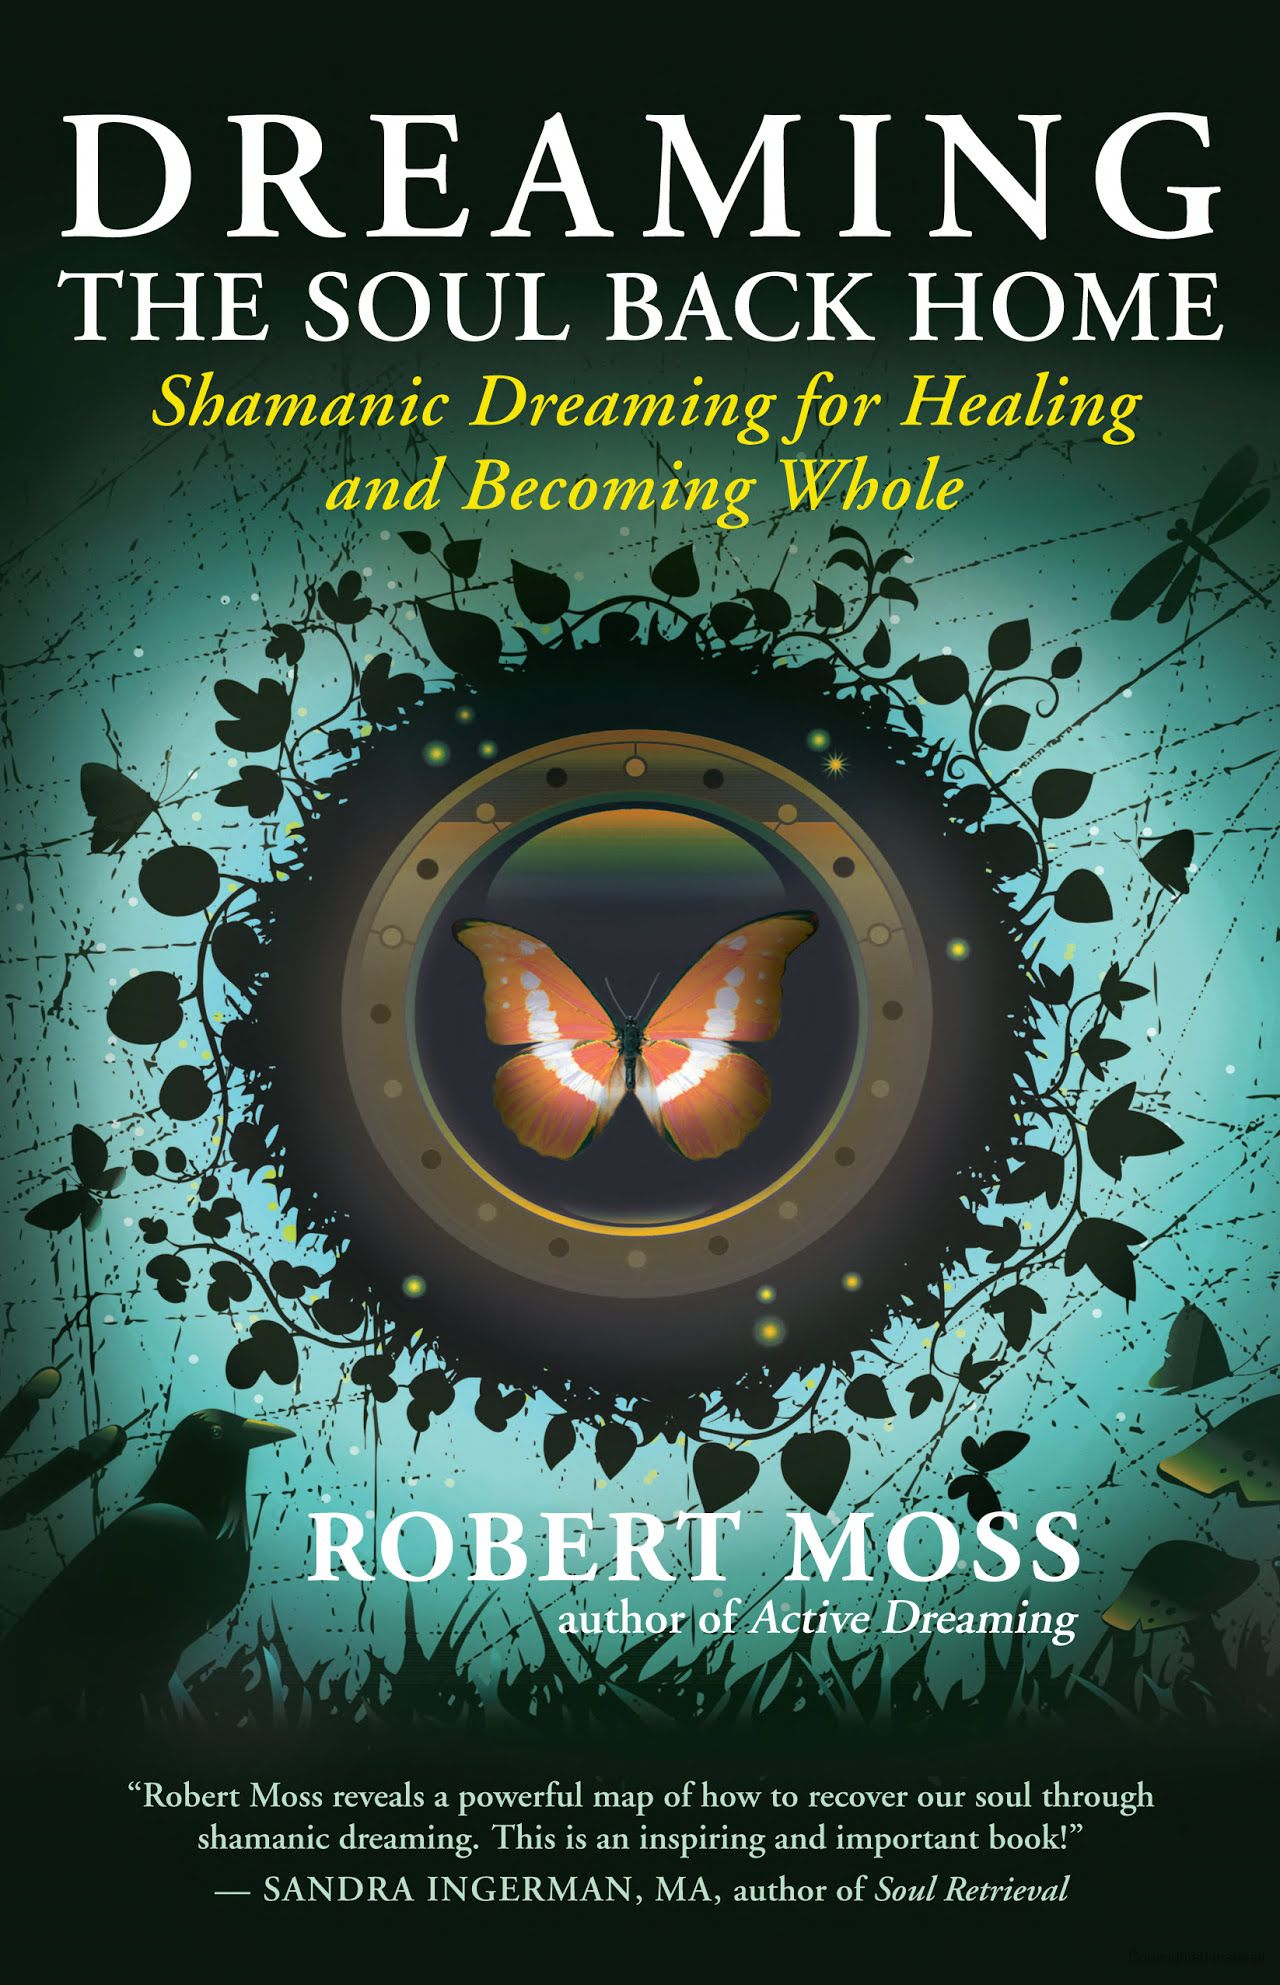 Dreaming The Soul Back Home Shamanic Dreaming For Healing And Becoming Whole Robert Moss Google Books Spirituality Books Books Shaman